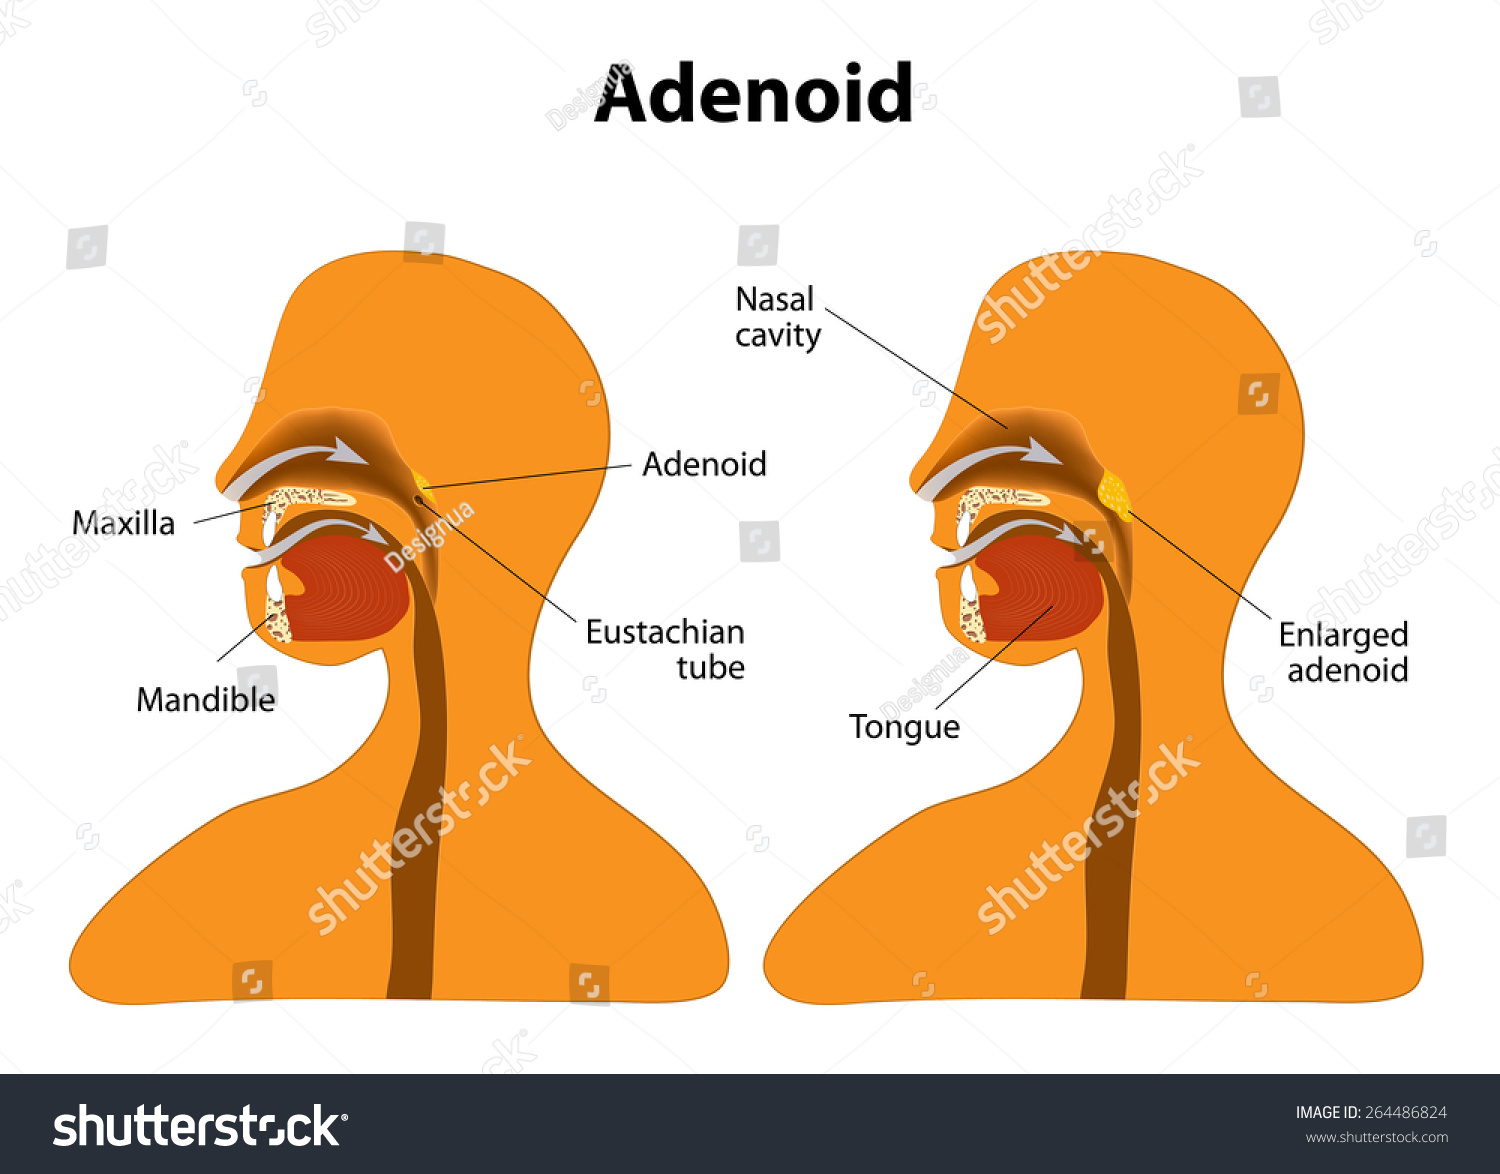 Adenoid Side View Show Position Adenoids Stock Illustration